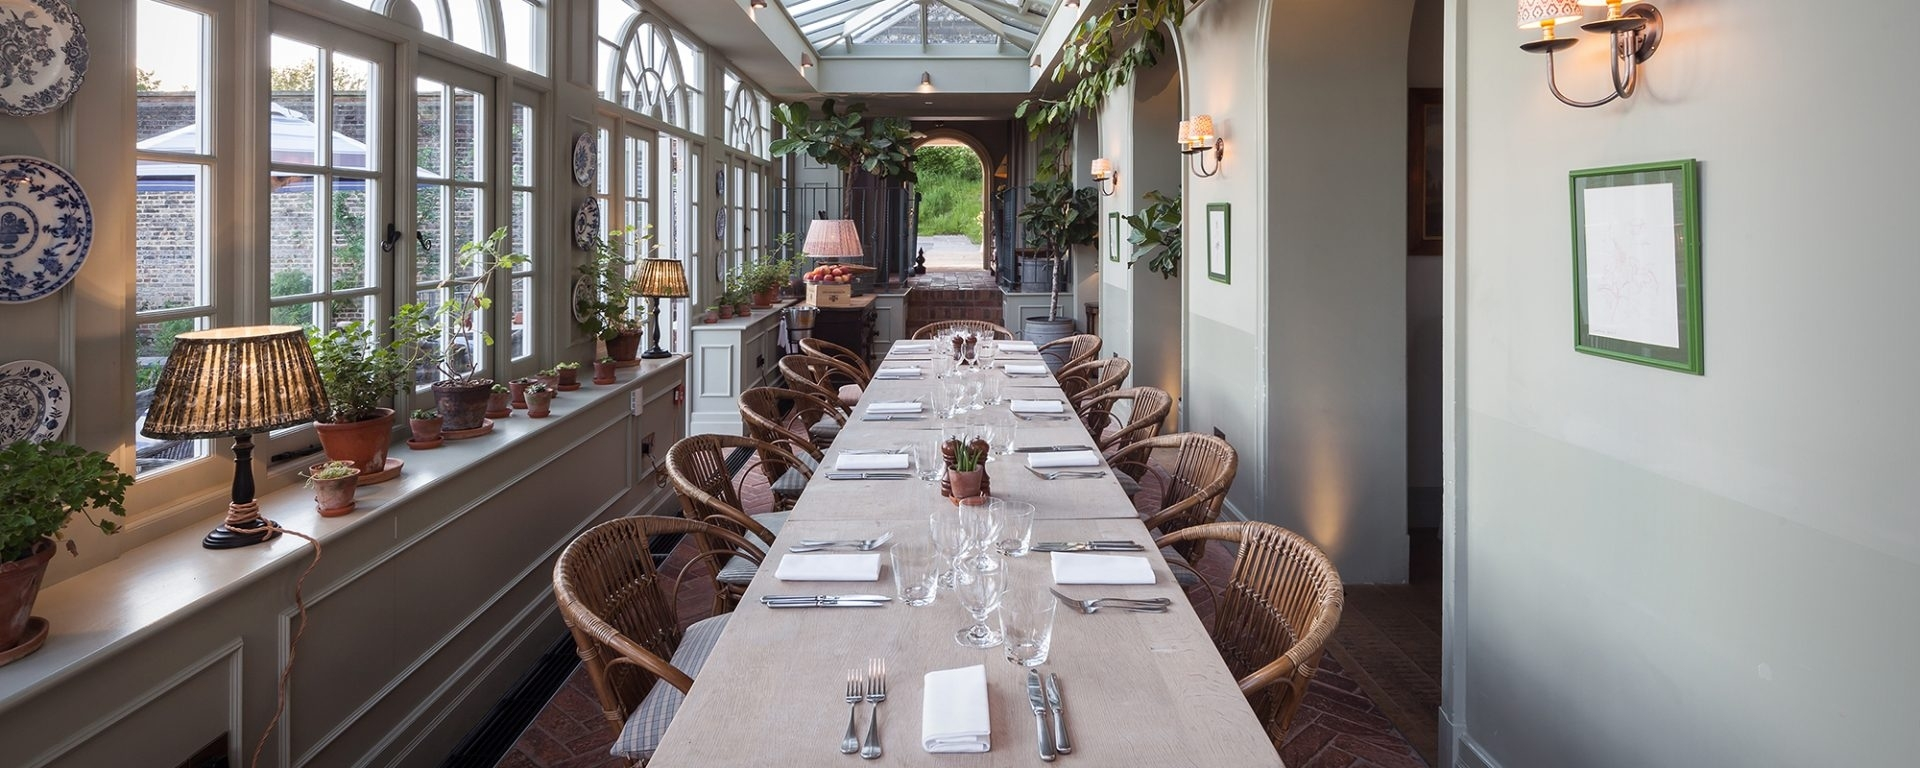 Beaverbrook | English Country House, Hotel, Restaurant & Spa | Eat with regard to The Garden House Restaurant Leatherhead